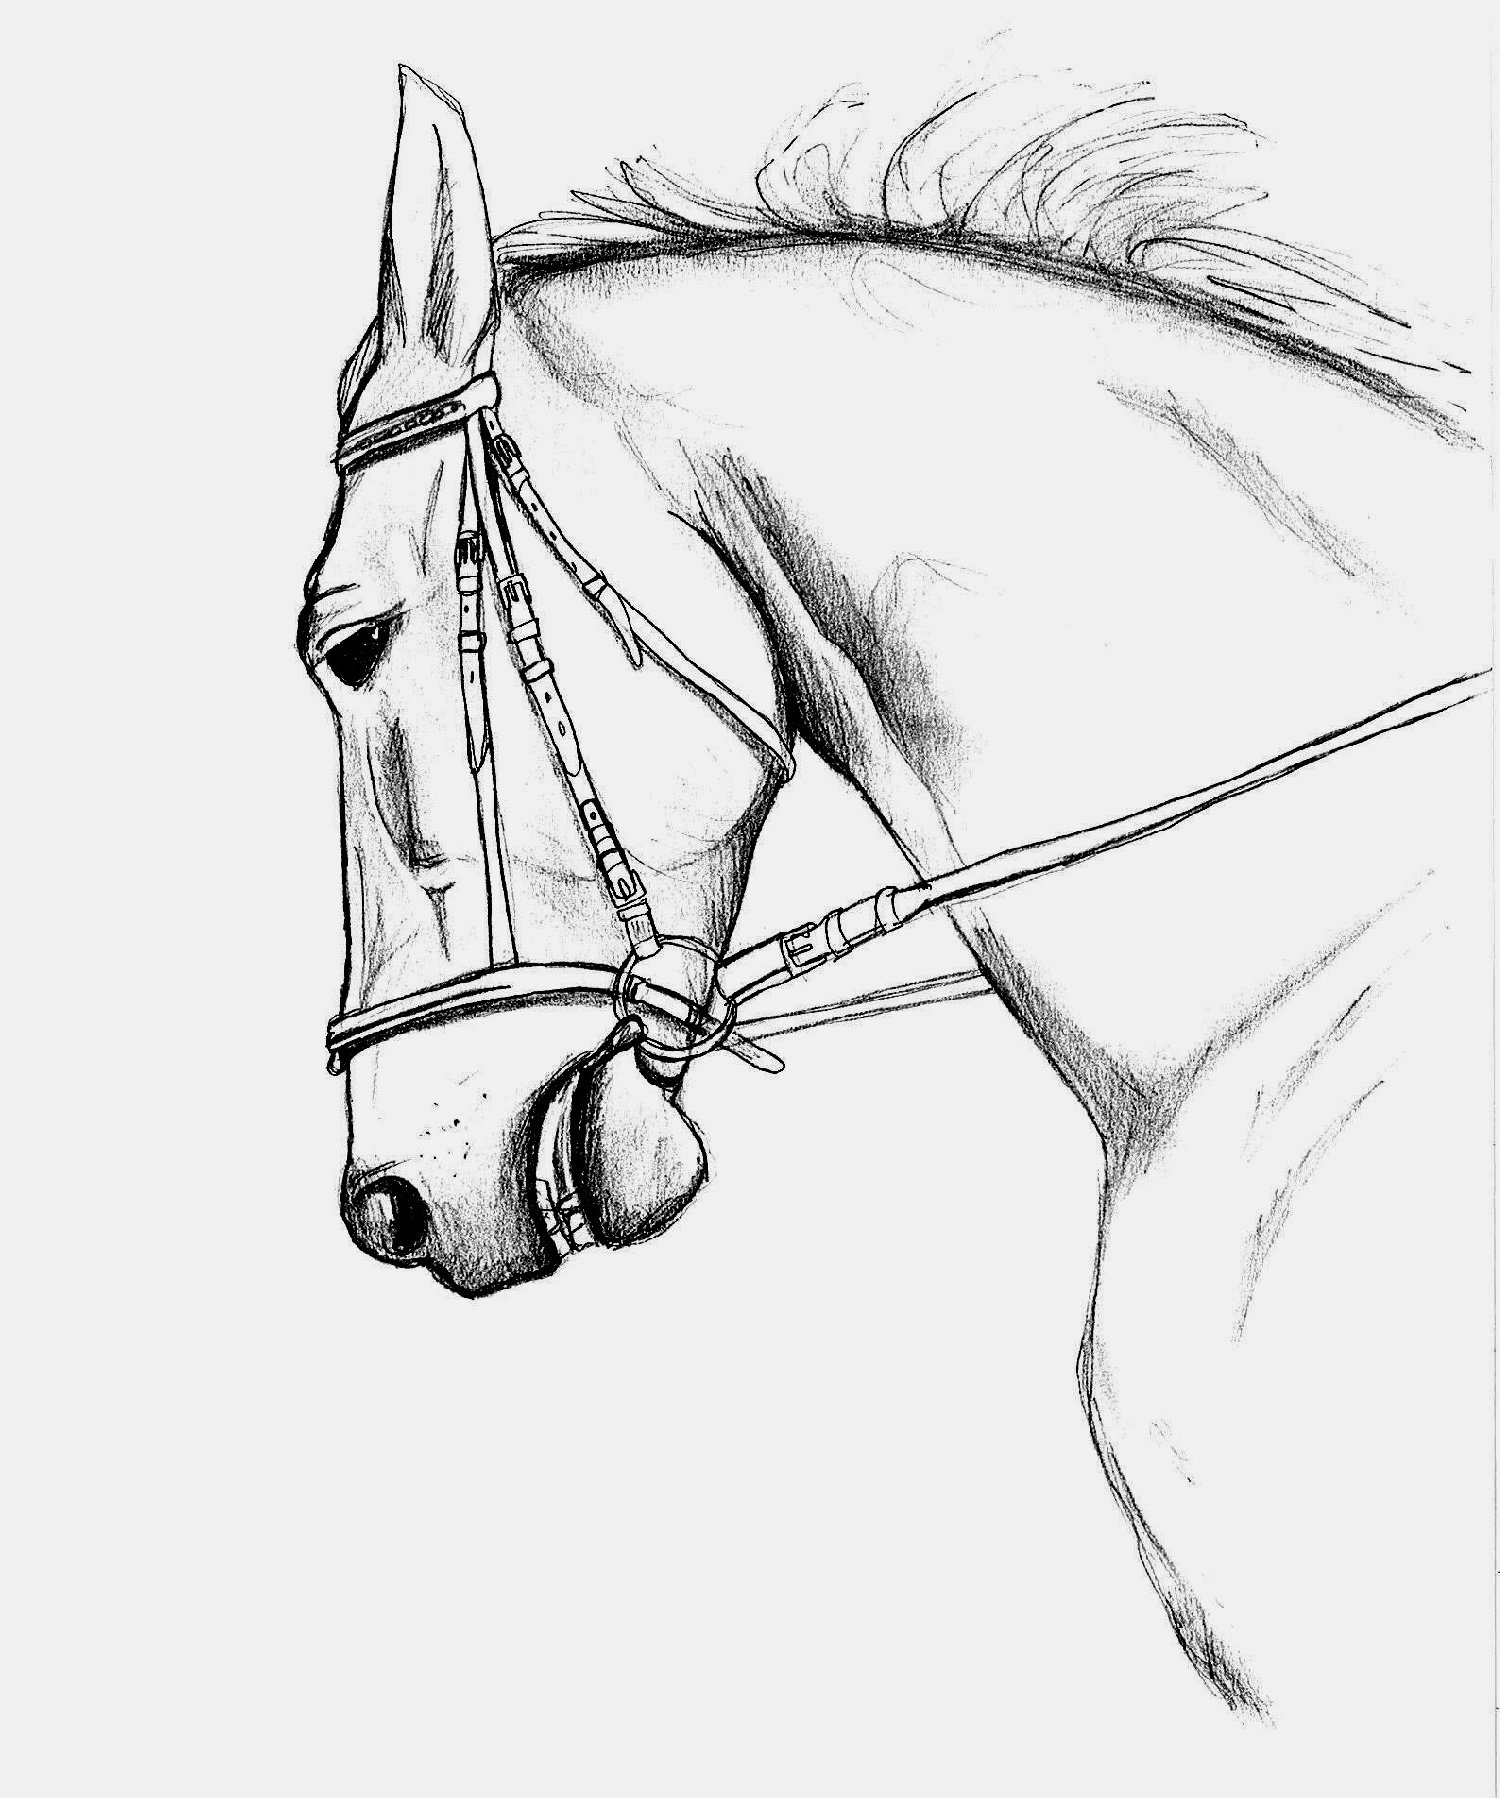 Impressionnant Coloriage A Imprimer Animaux Cheval